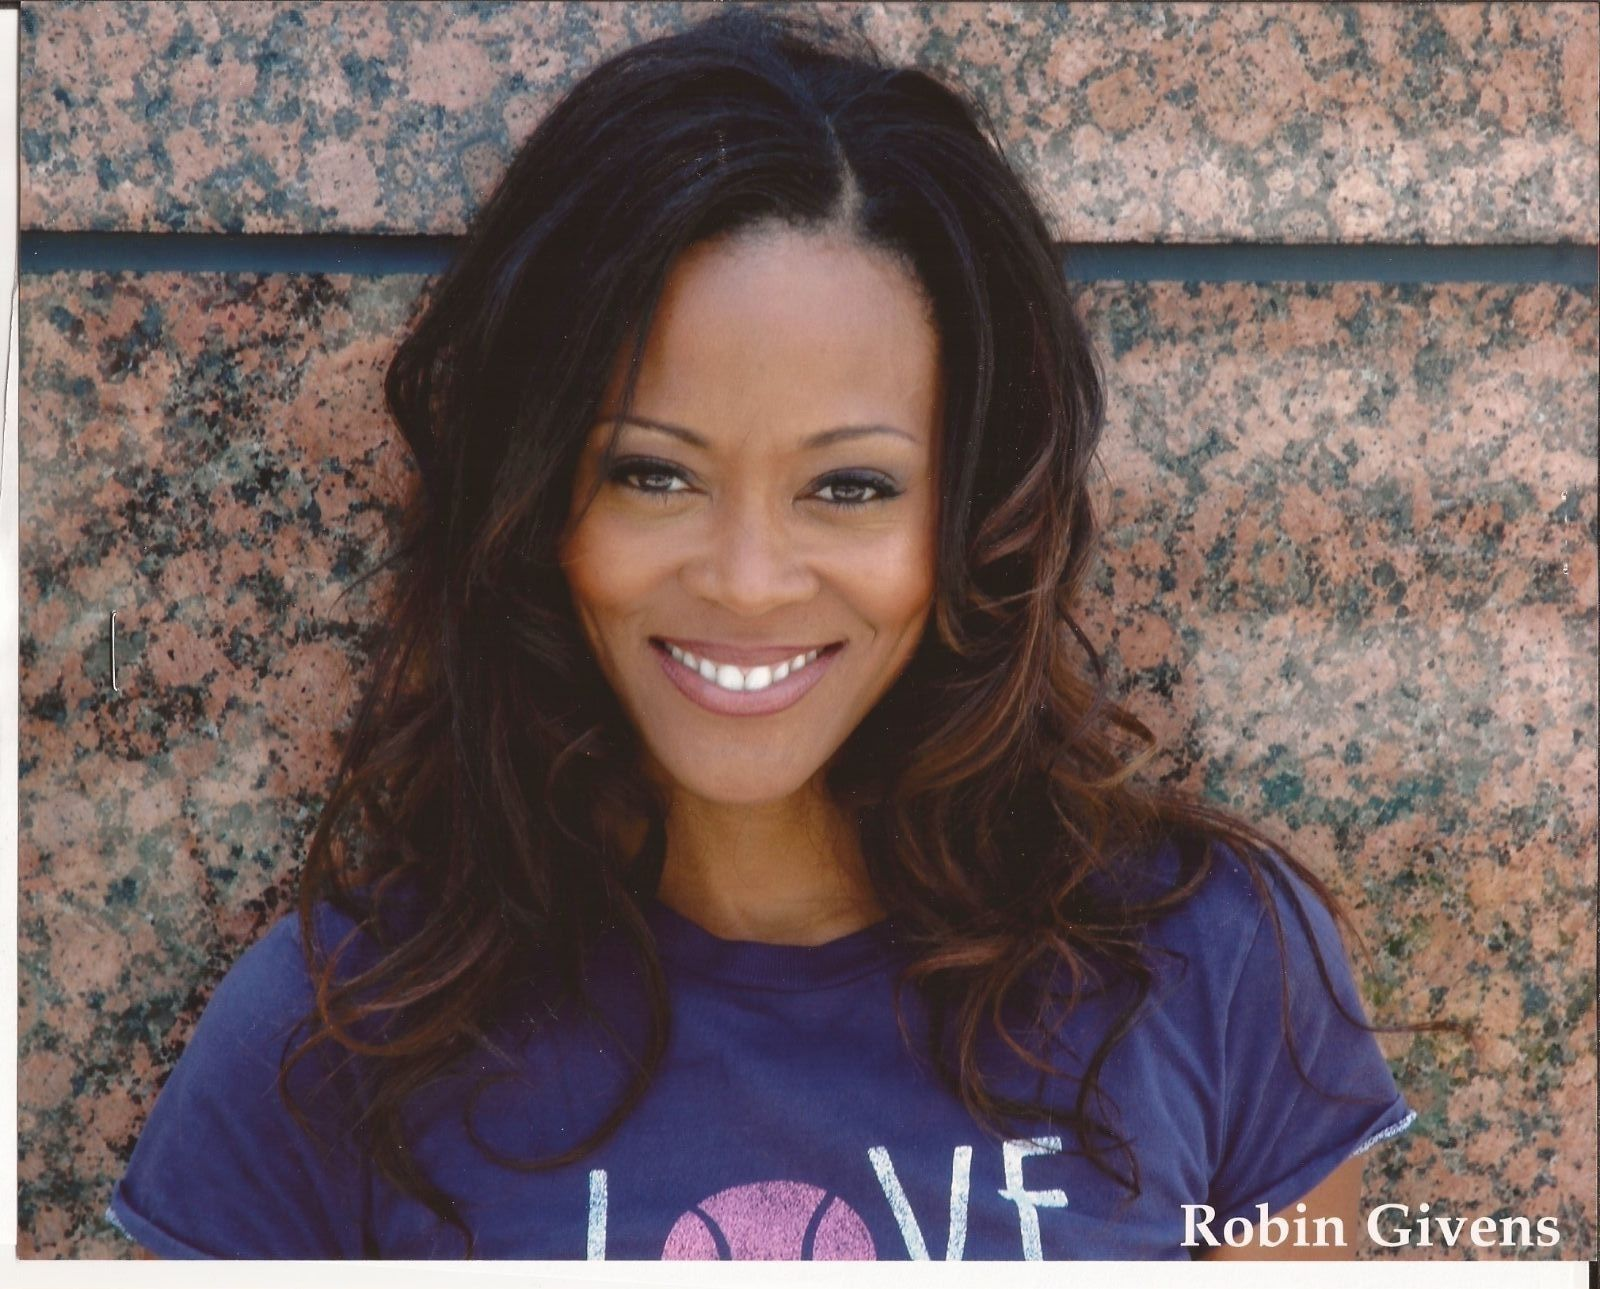 s-l1600ROBIN_GIVENS_glamour_agency_Headshot_Photo_HEAD_OF_THE_CLASS_Tyler